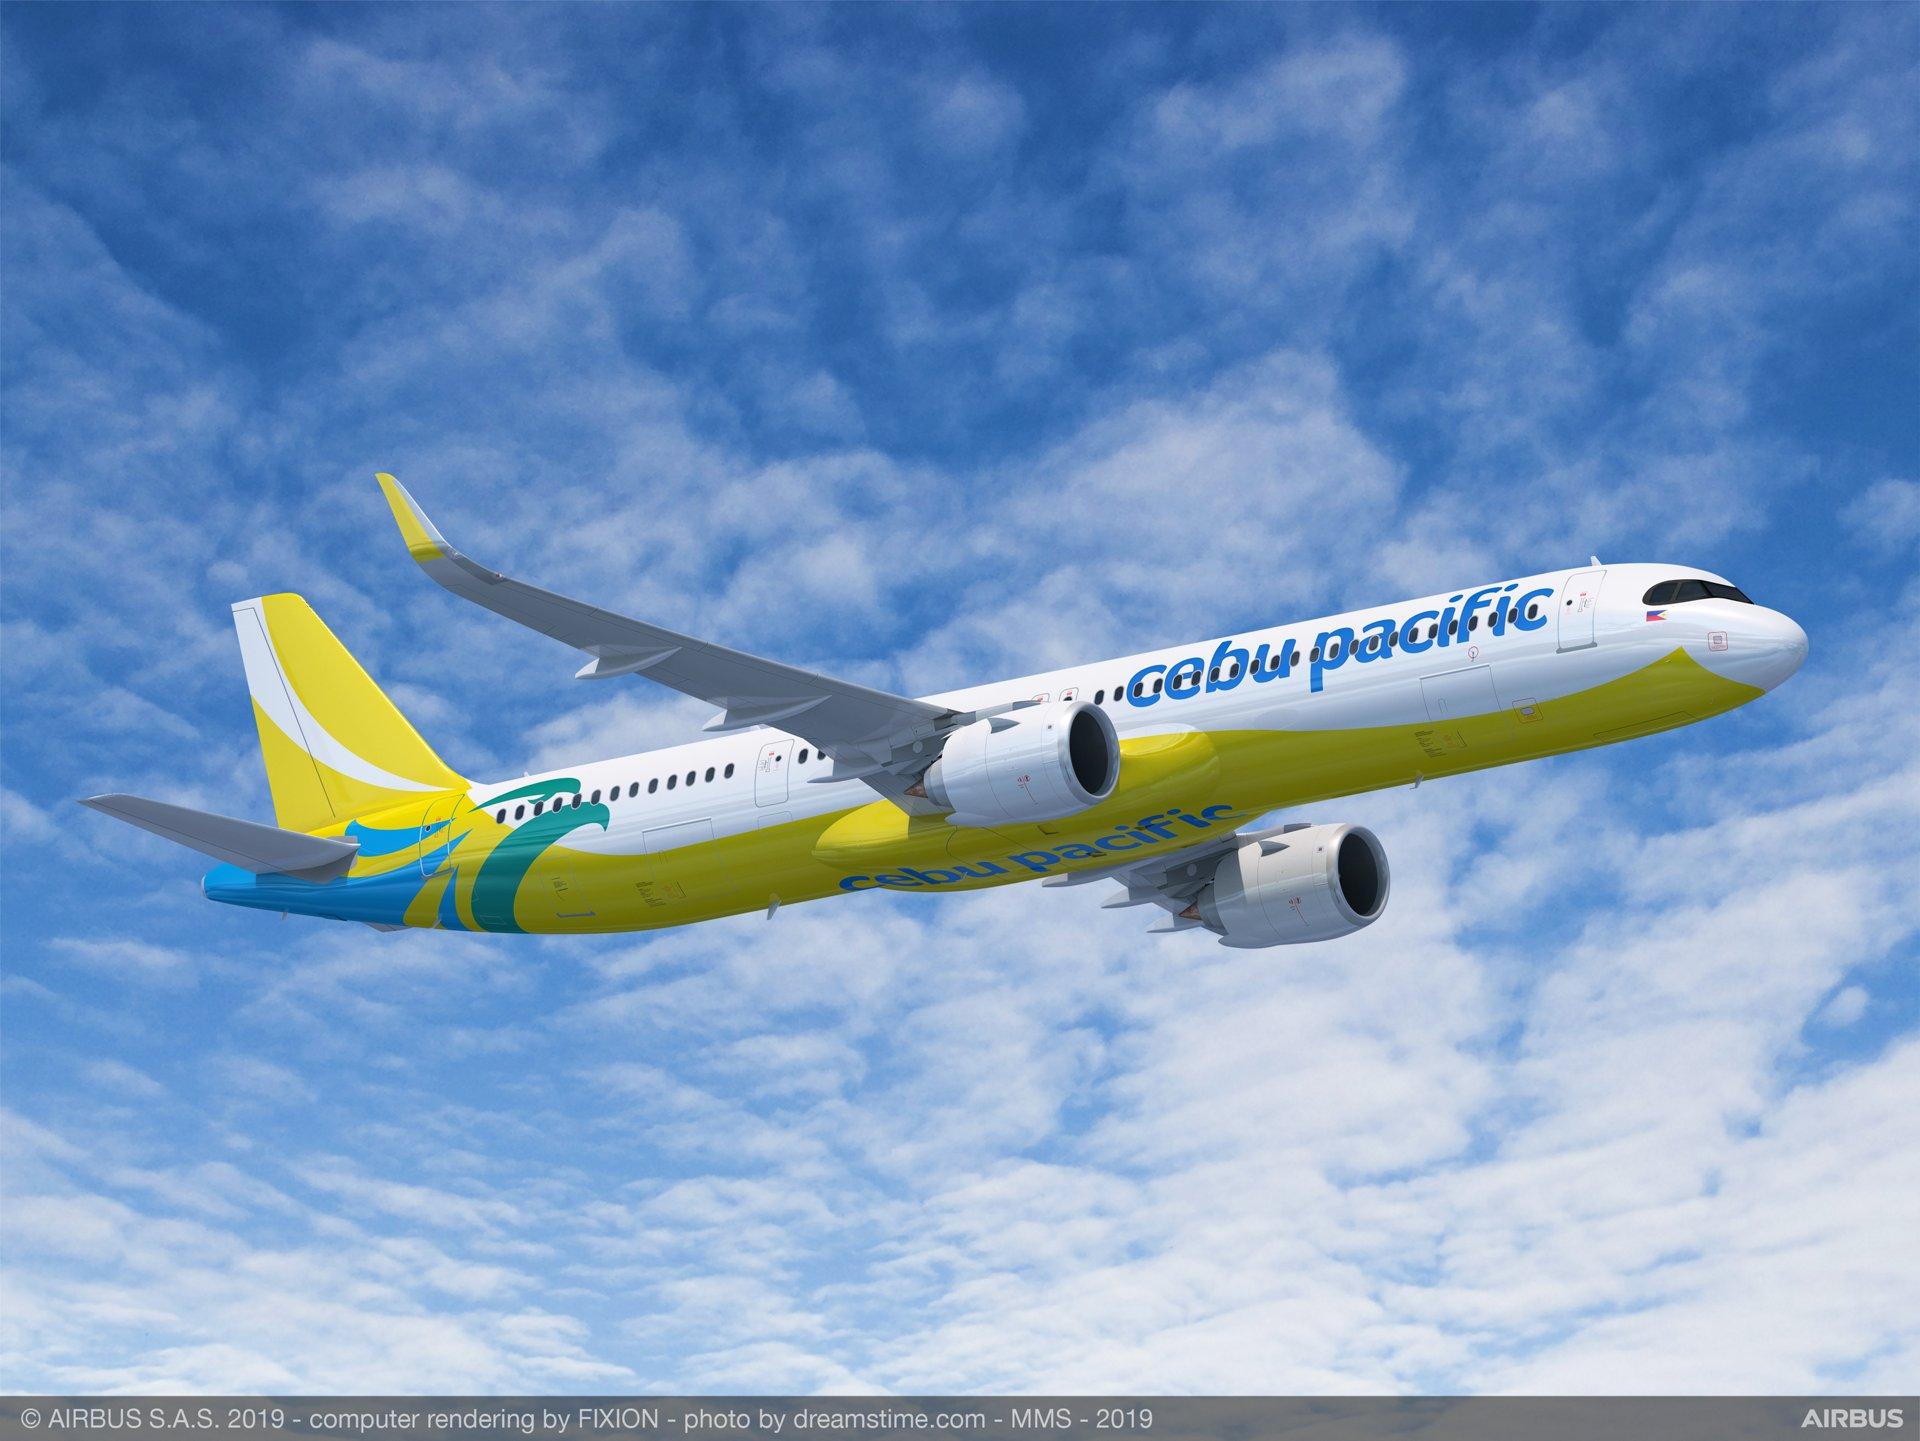 Cebu Pacific's Memorandum of Understanding for 31 Airbus jetliners – announced at the 2019 Paris Air Show – includes 10 A321XLR versions, which respond to market needs for even more range and payload